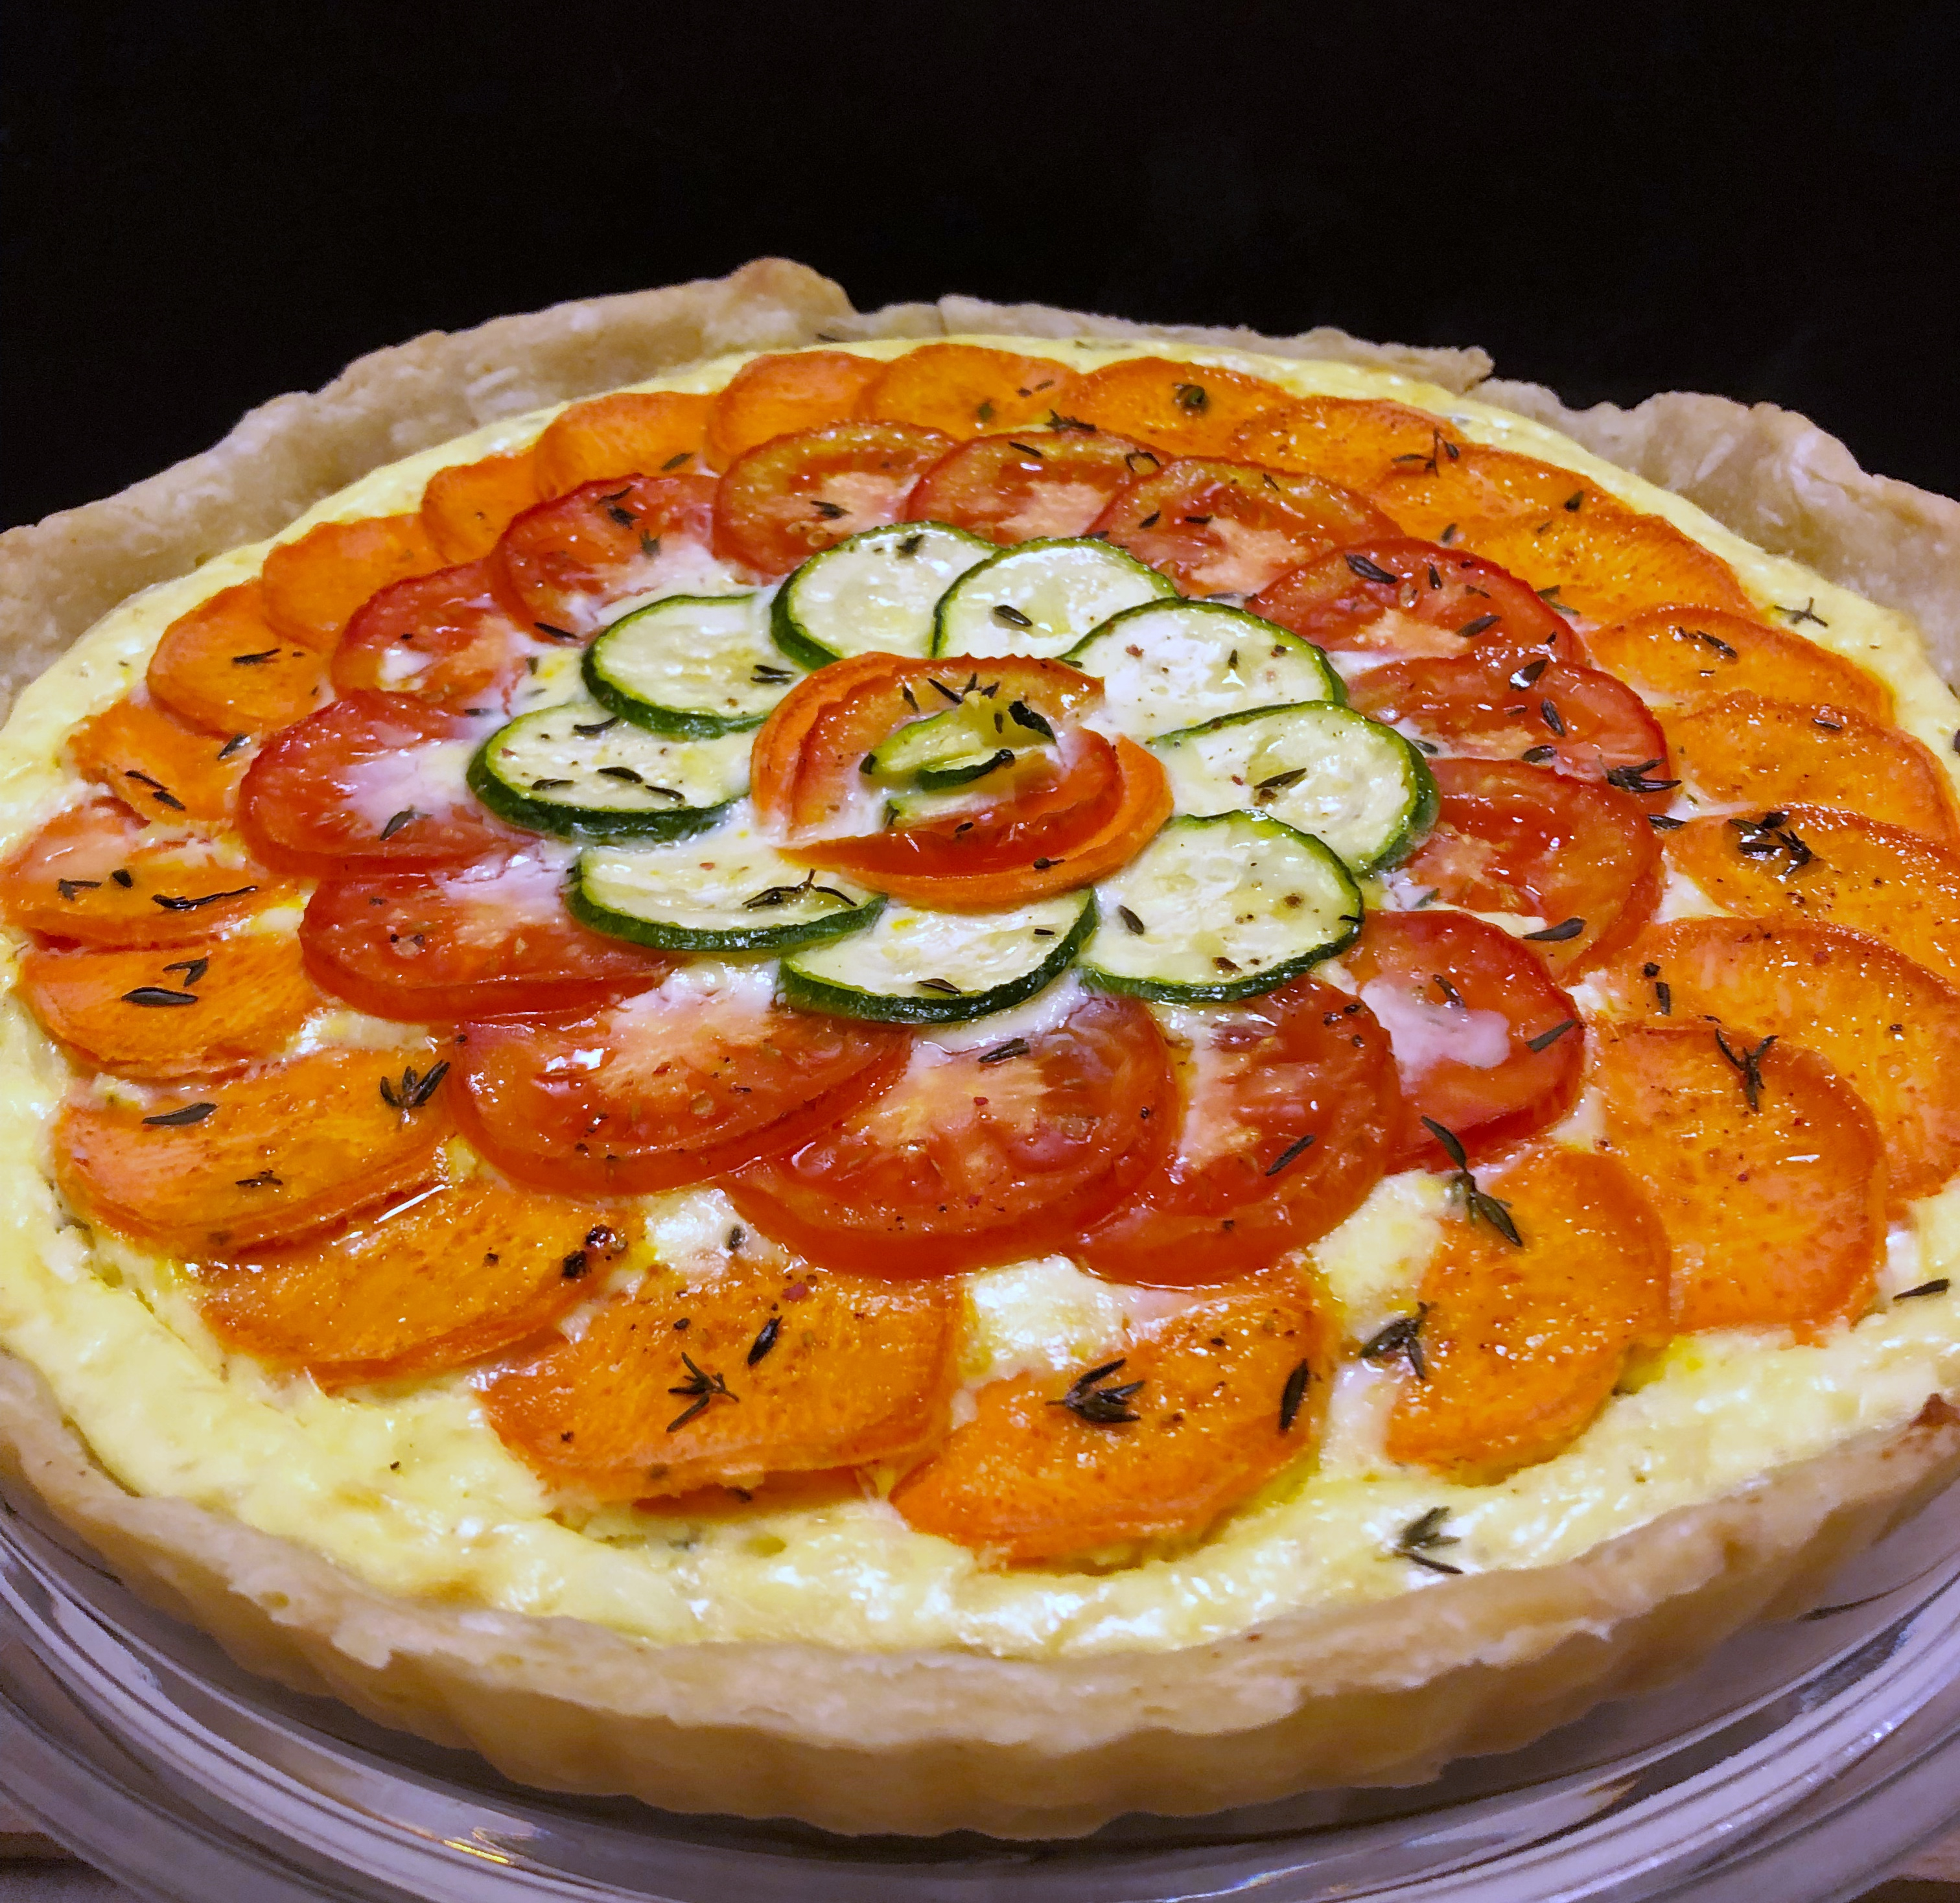 Sally's Baking Addiction: November, 2018 Challenge: Savory Vegetable Cheese Tart🍠🍅🧀